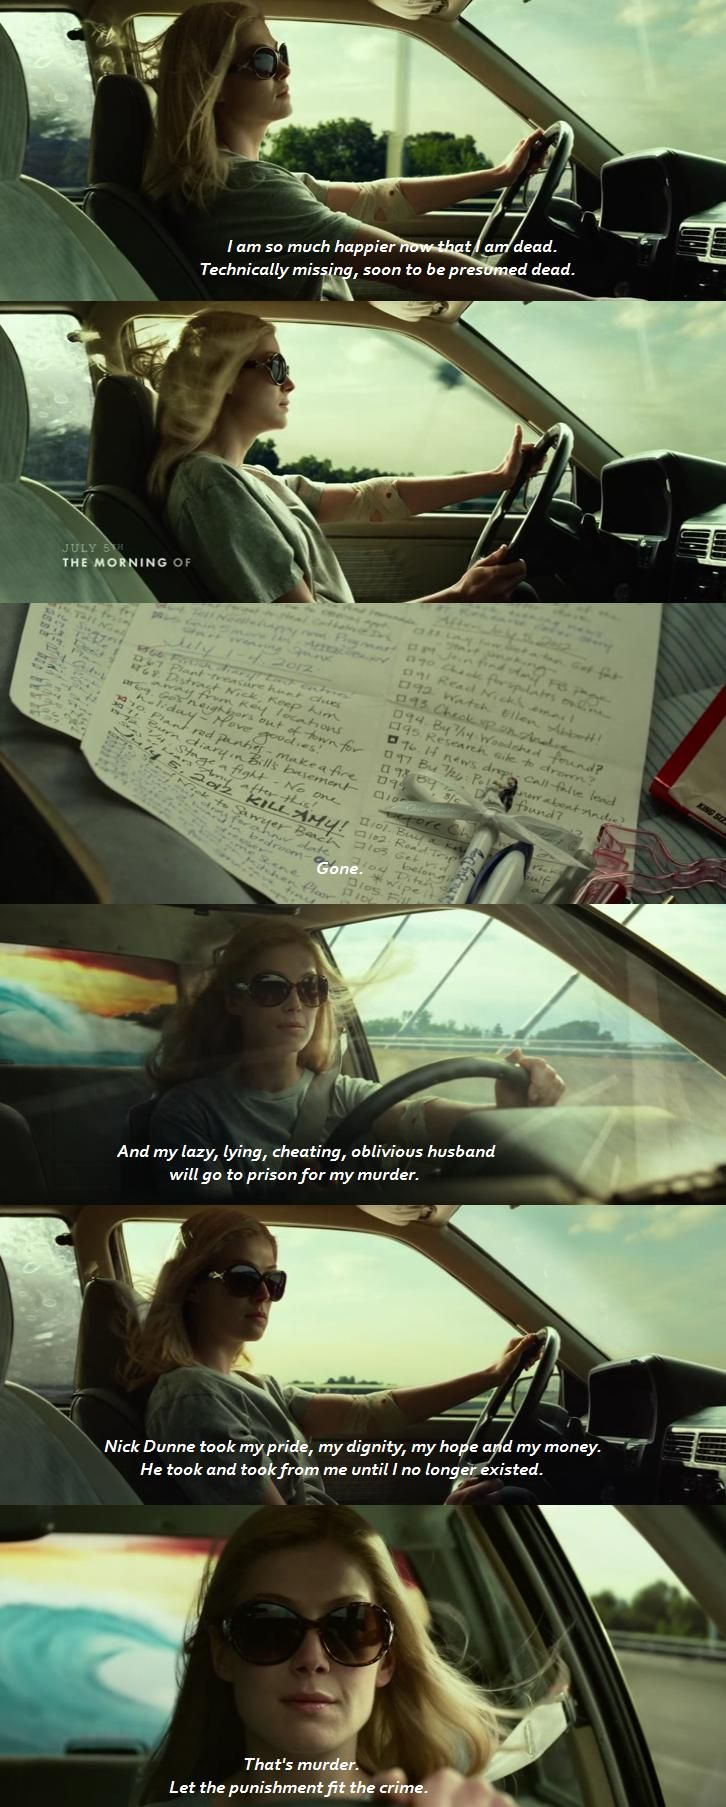 Amore Bugiardo - Gone Girl (2014) Rosamund Pike as Amy Elliot Dunne